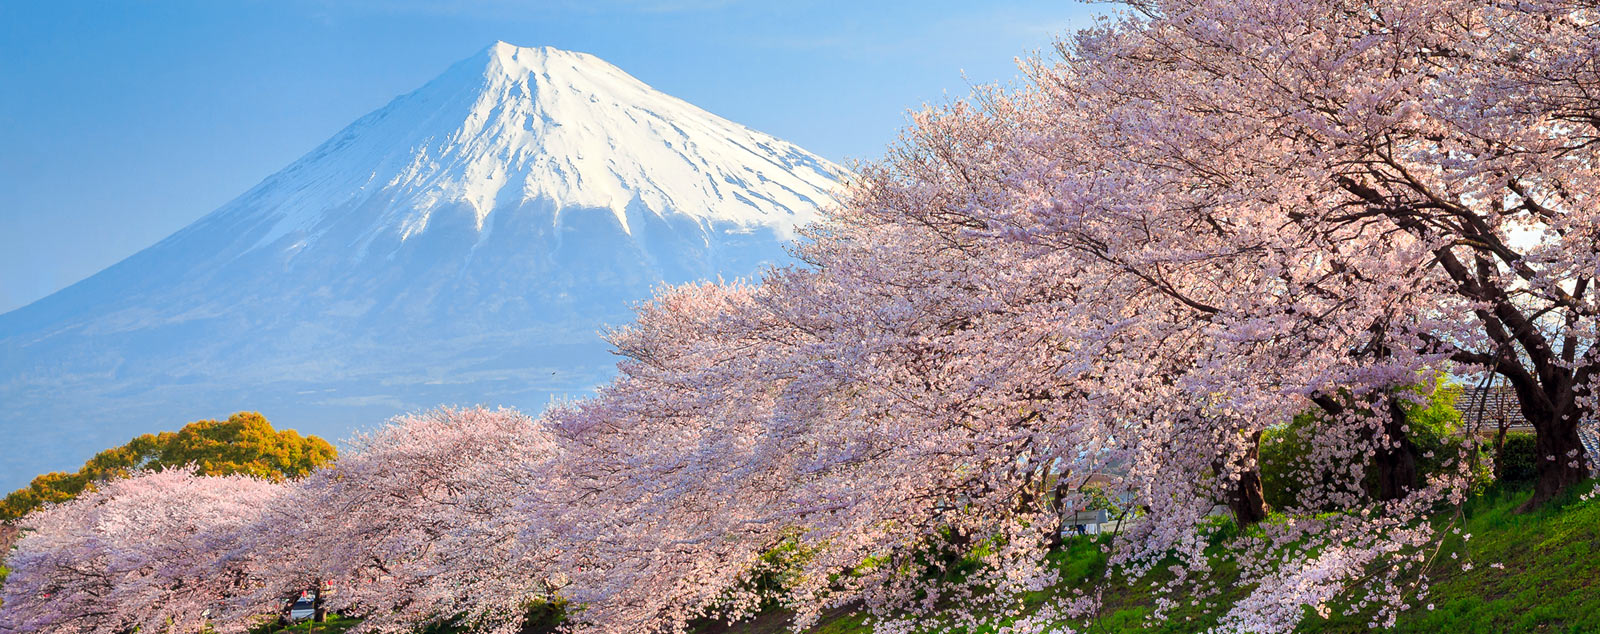 Pink blossom trees lining a river in the foreground with a snow-capped Mount Fuji in the background.